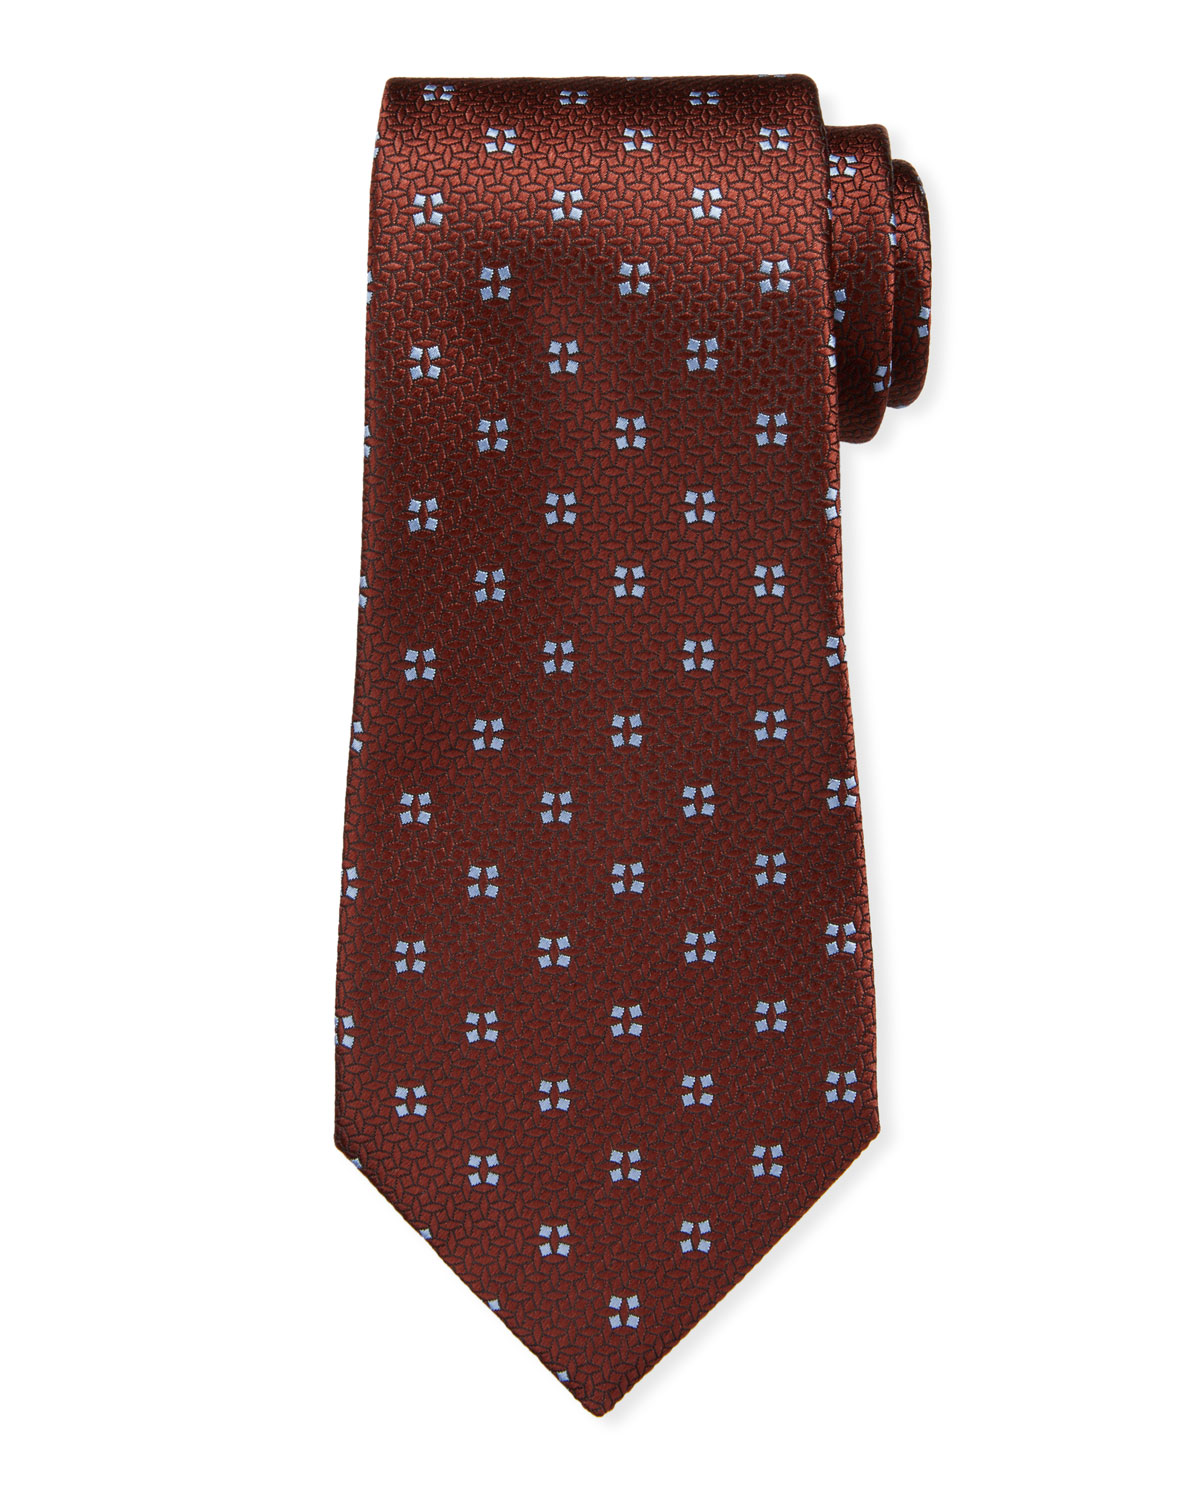 Ermenegildo Zegna Men's Four Micro-Square Silk Tie